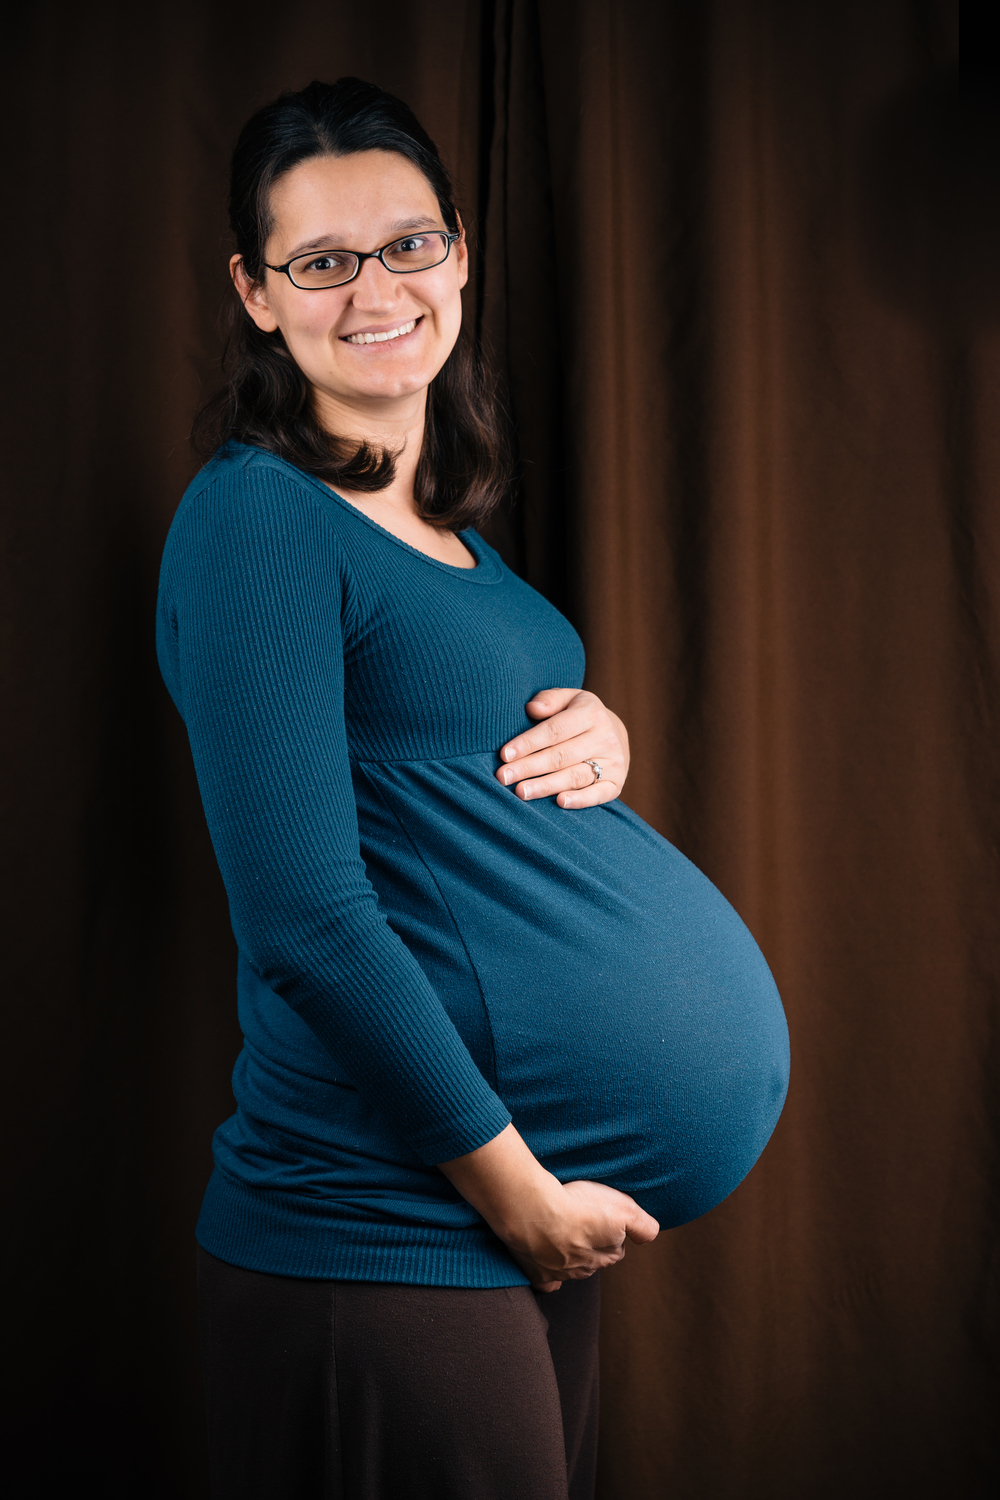 brett-smith-photography-maternity.jpg